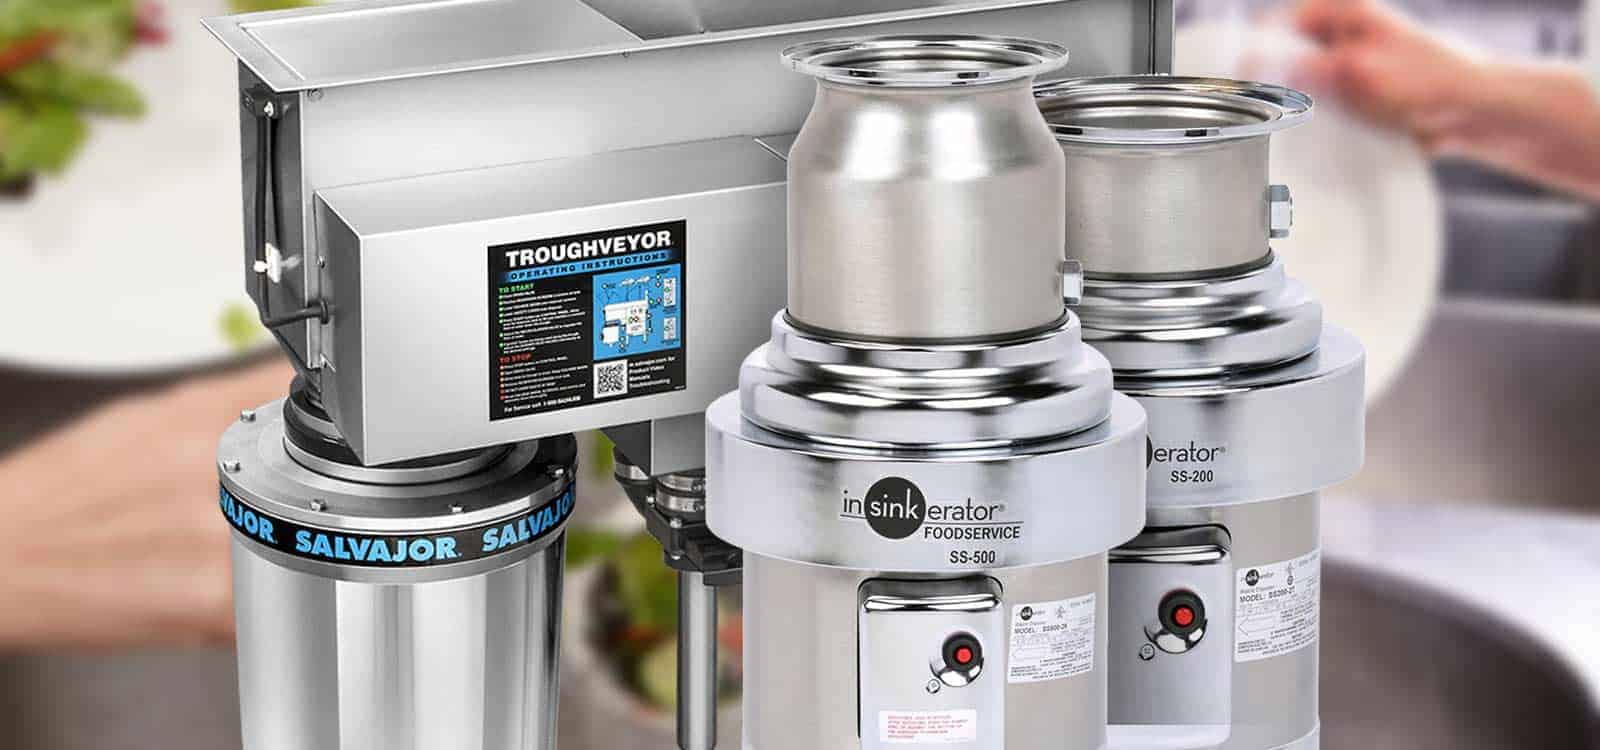 Commercial Garbage Disposals for Food Waste - Recycling.com